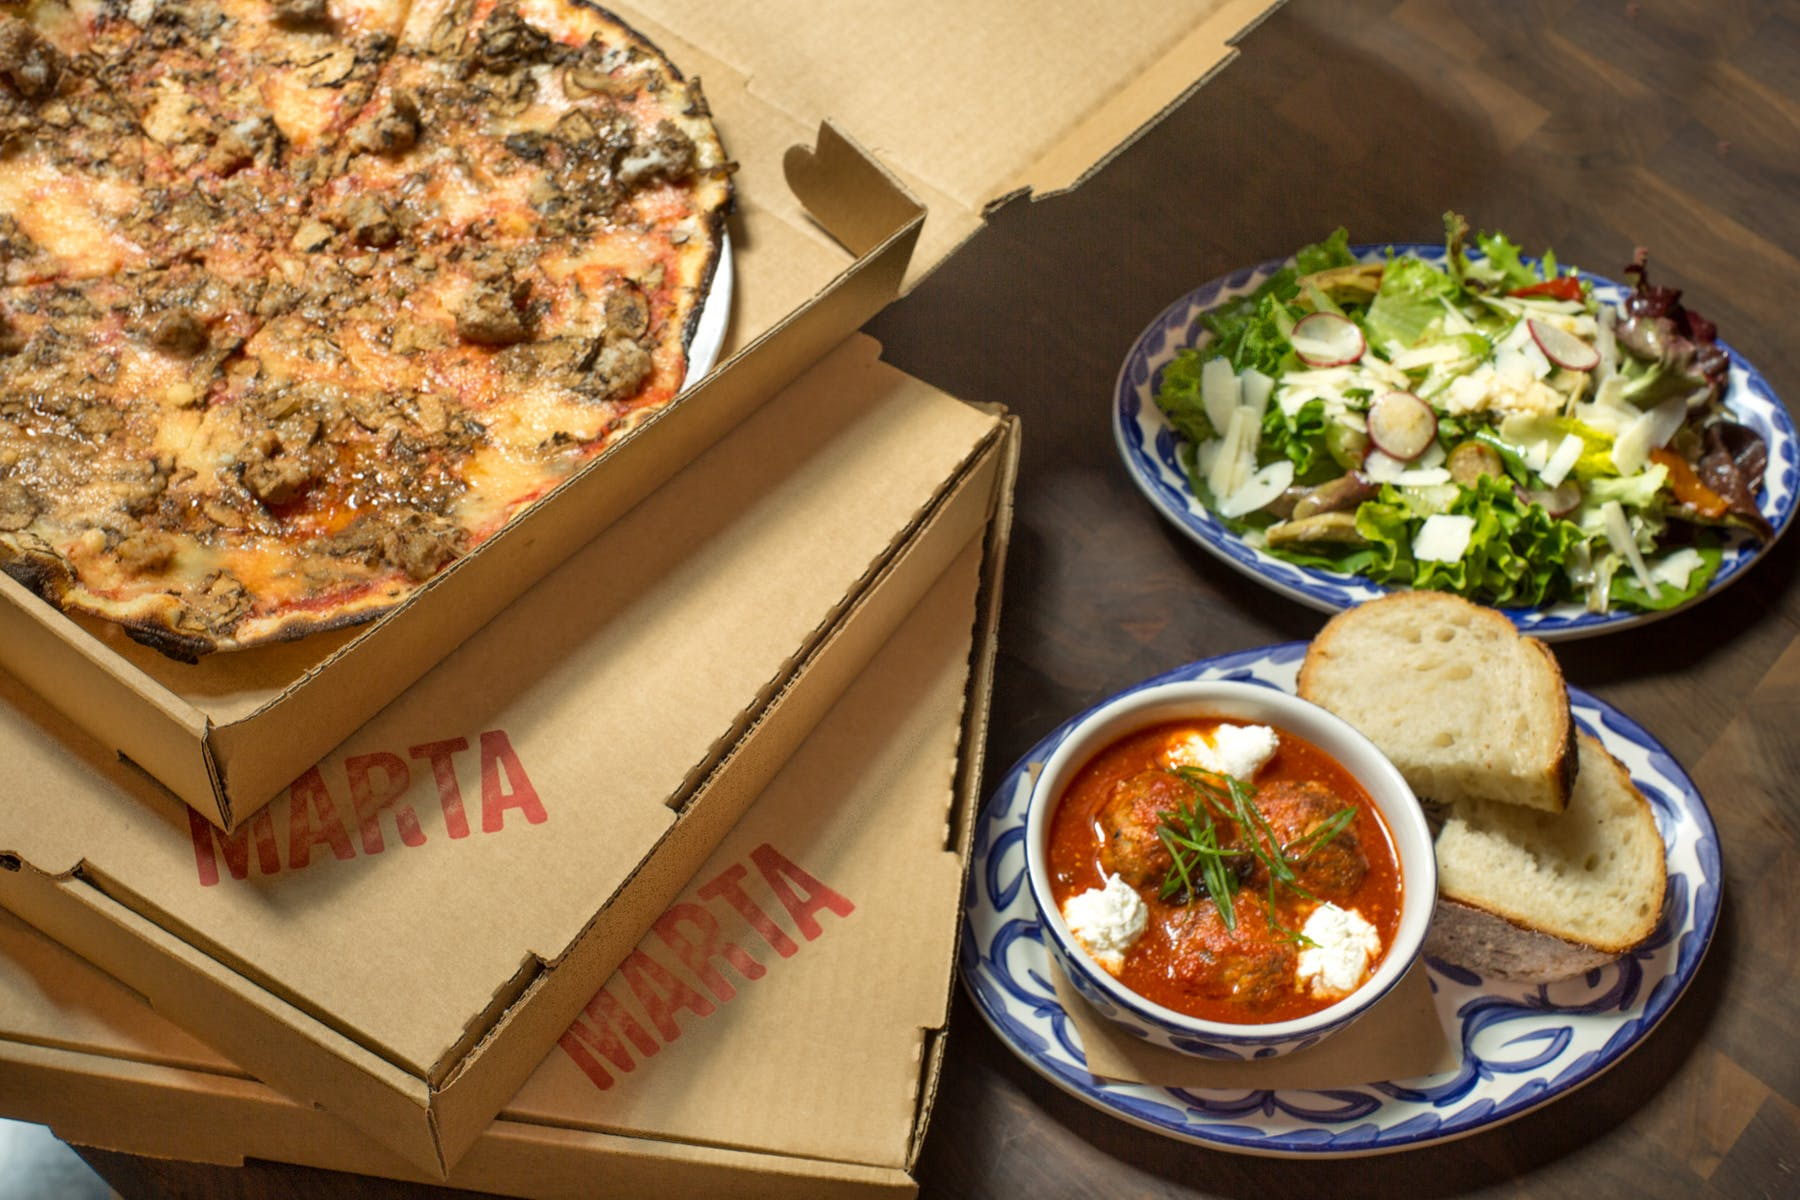 Boxes of Marta pizzas on a table